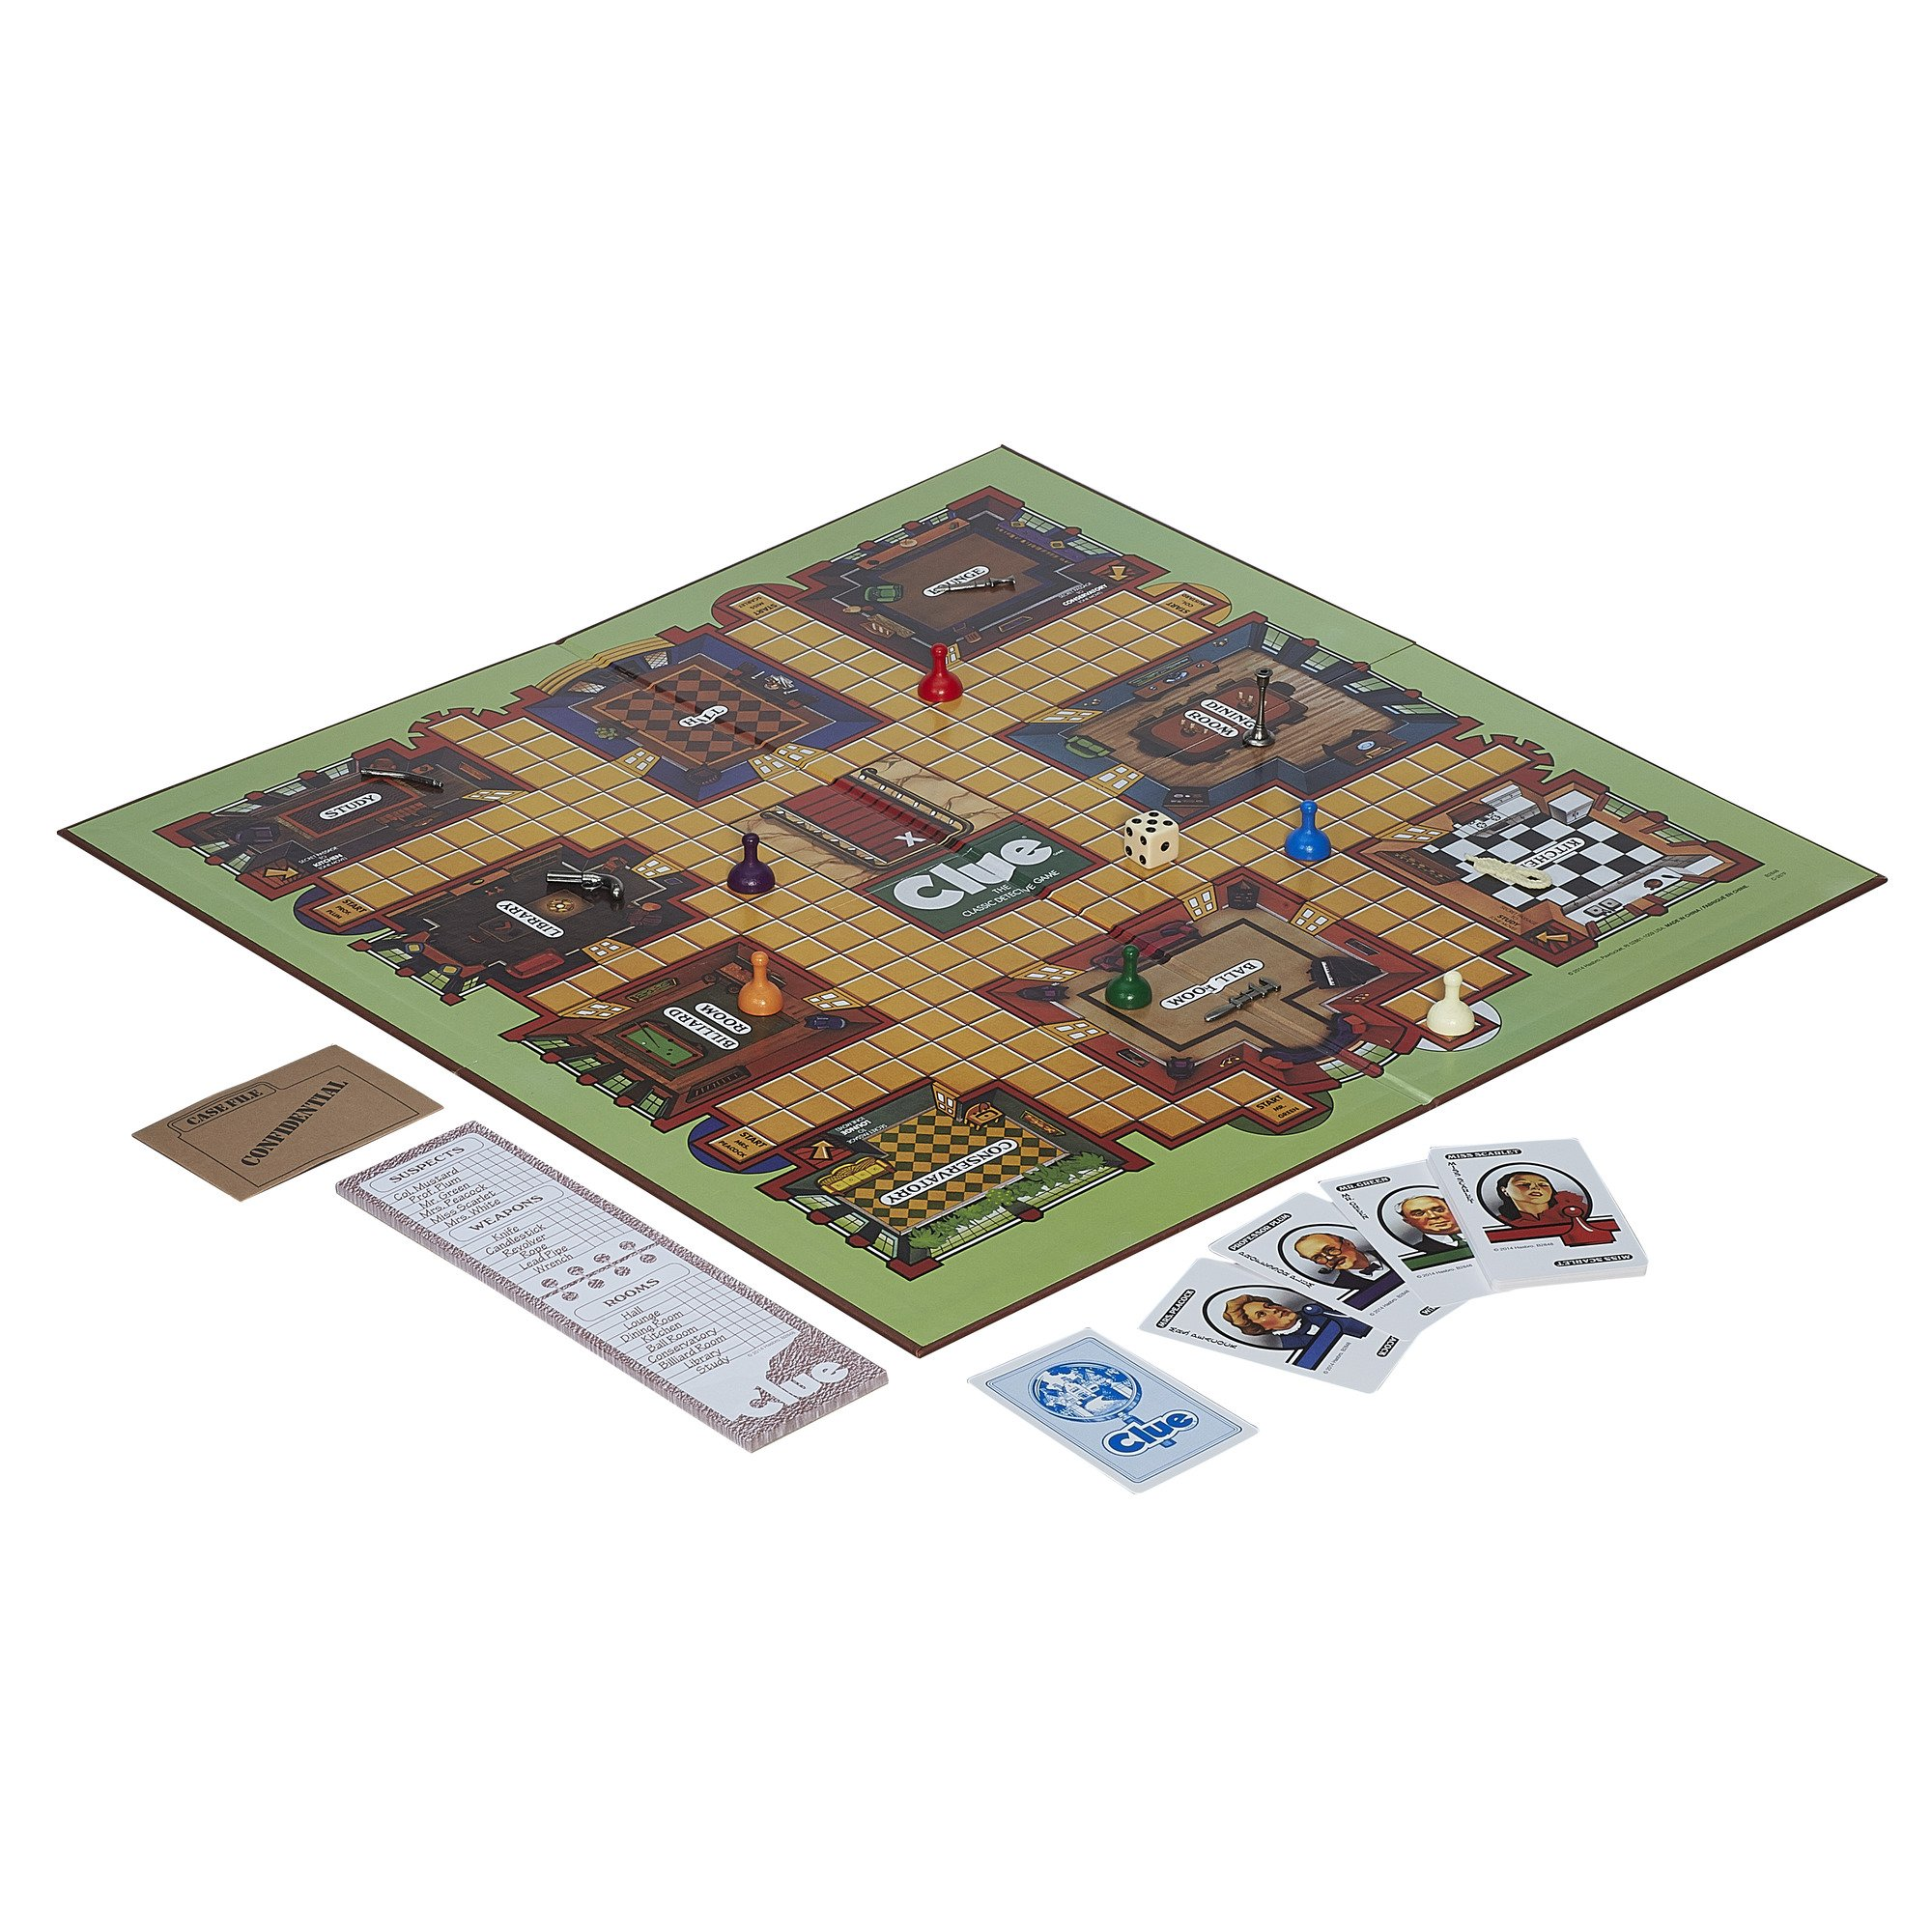 Retro Series Clue 1986 Edition Game by Hasbro (Image #2)